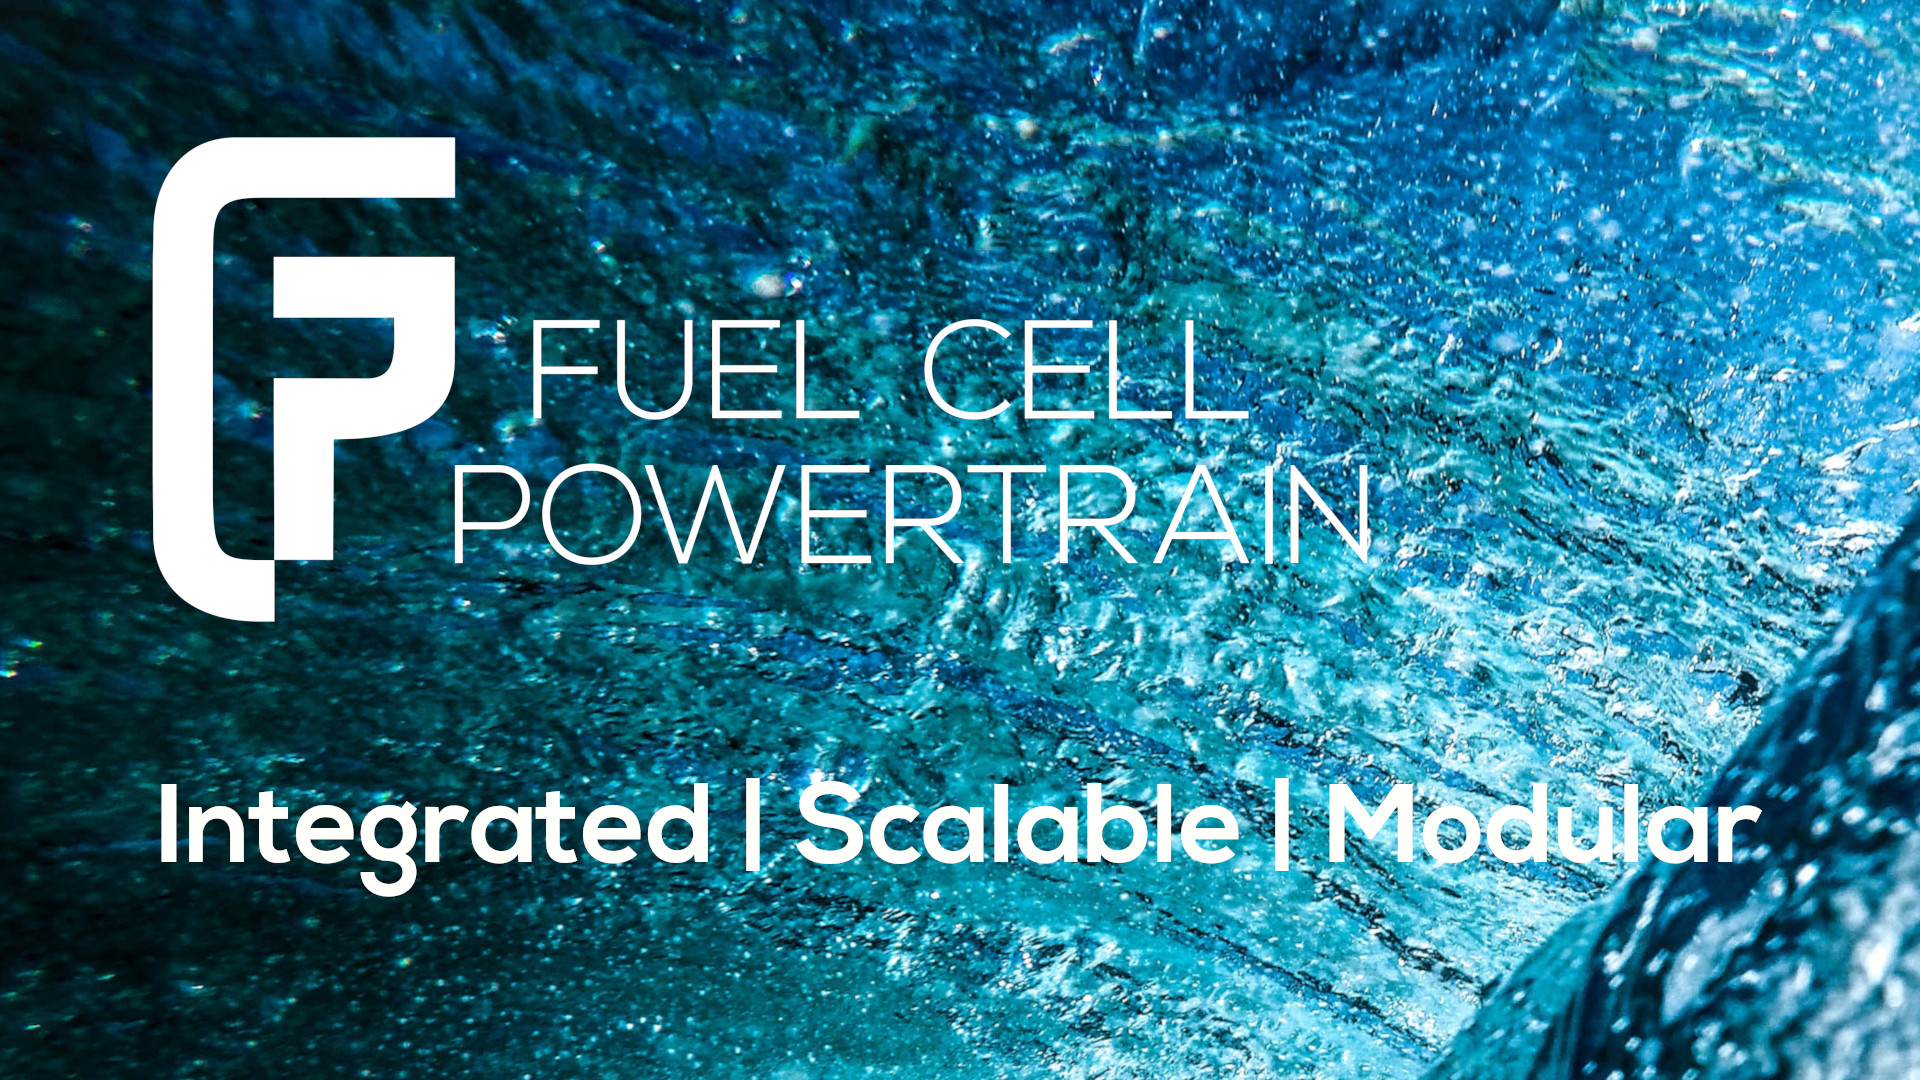 FCP Fuel Cell Powertrain GmbH – Product Image 1